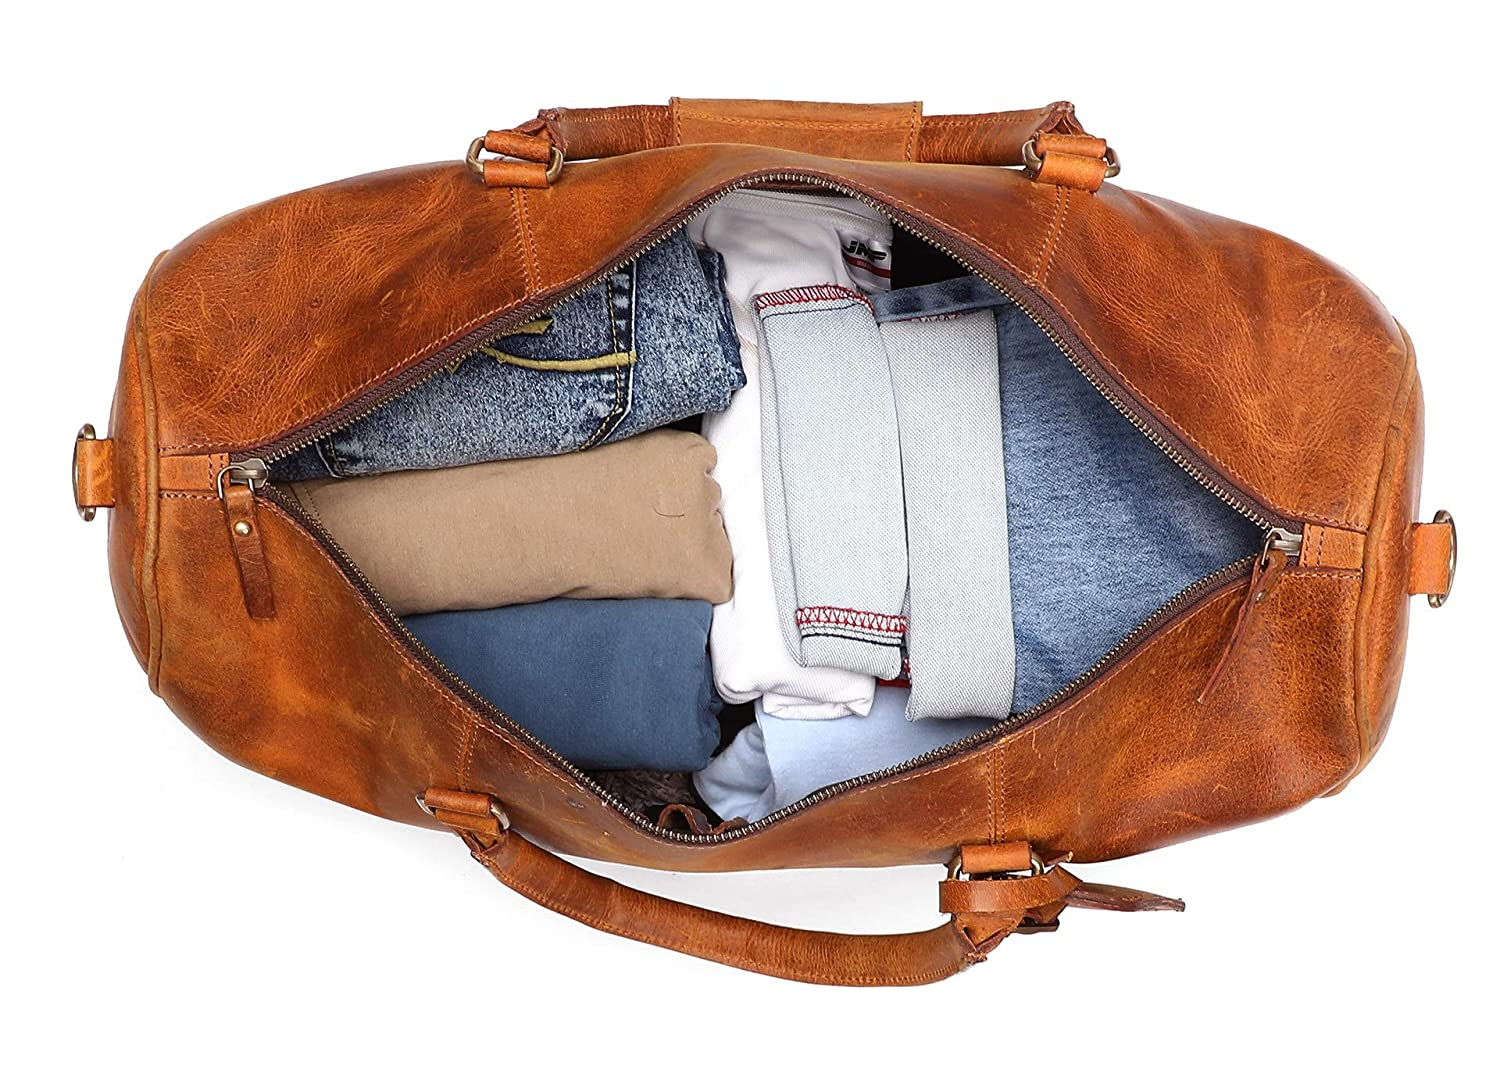 Leather Duffel Bags for Men - Airplane Underseat Carry On Luggage by  RusticTown DF17ADN 606813322e0fd